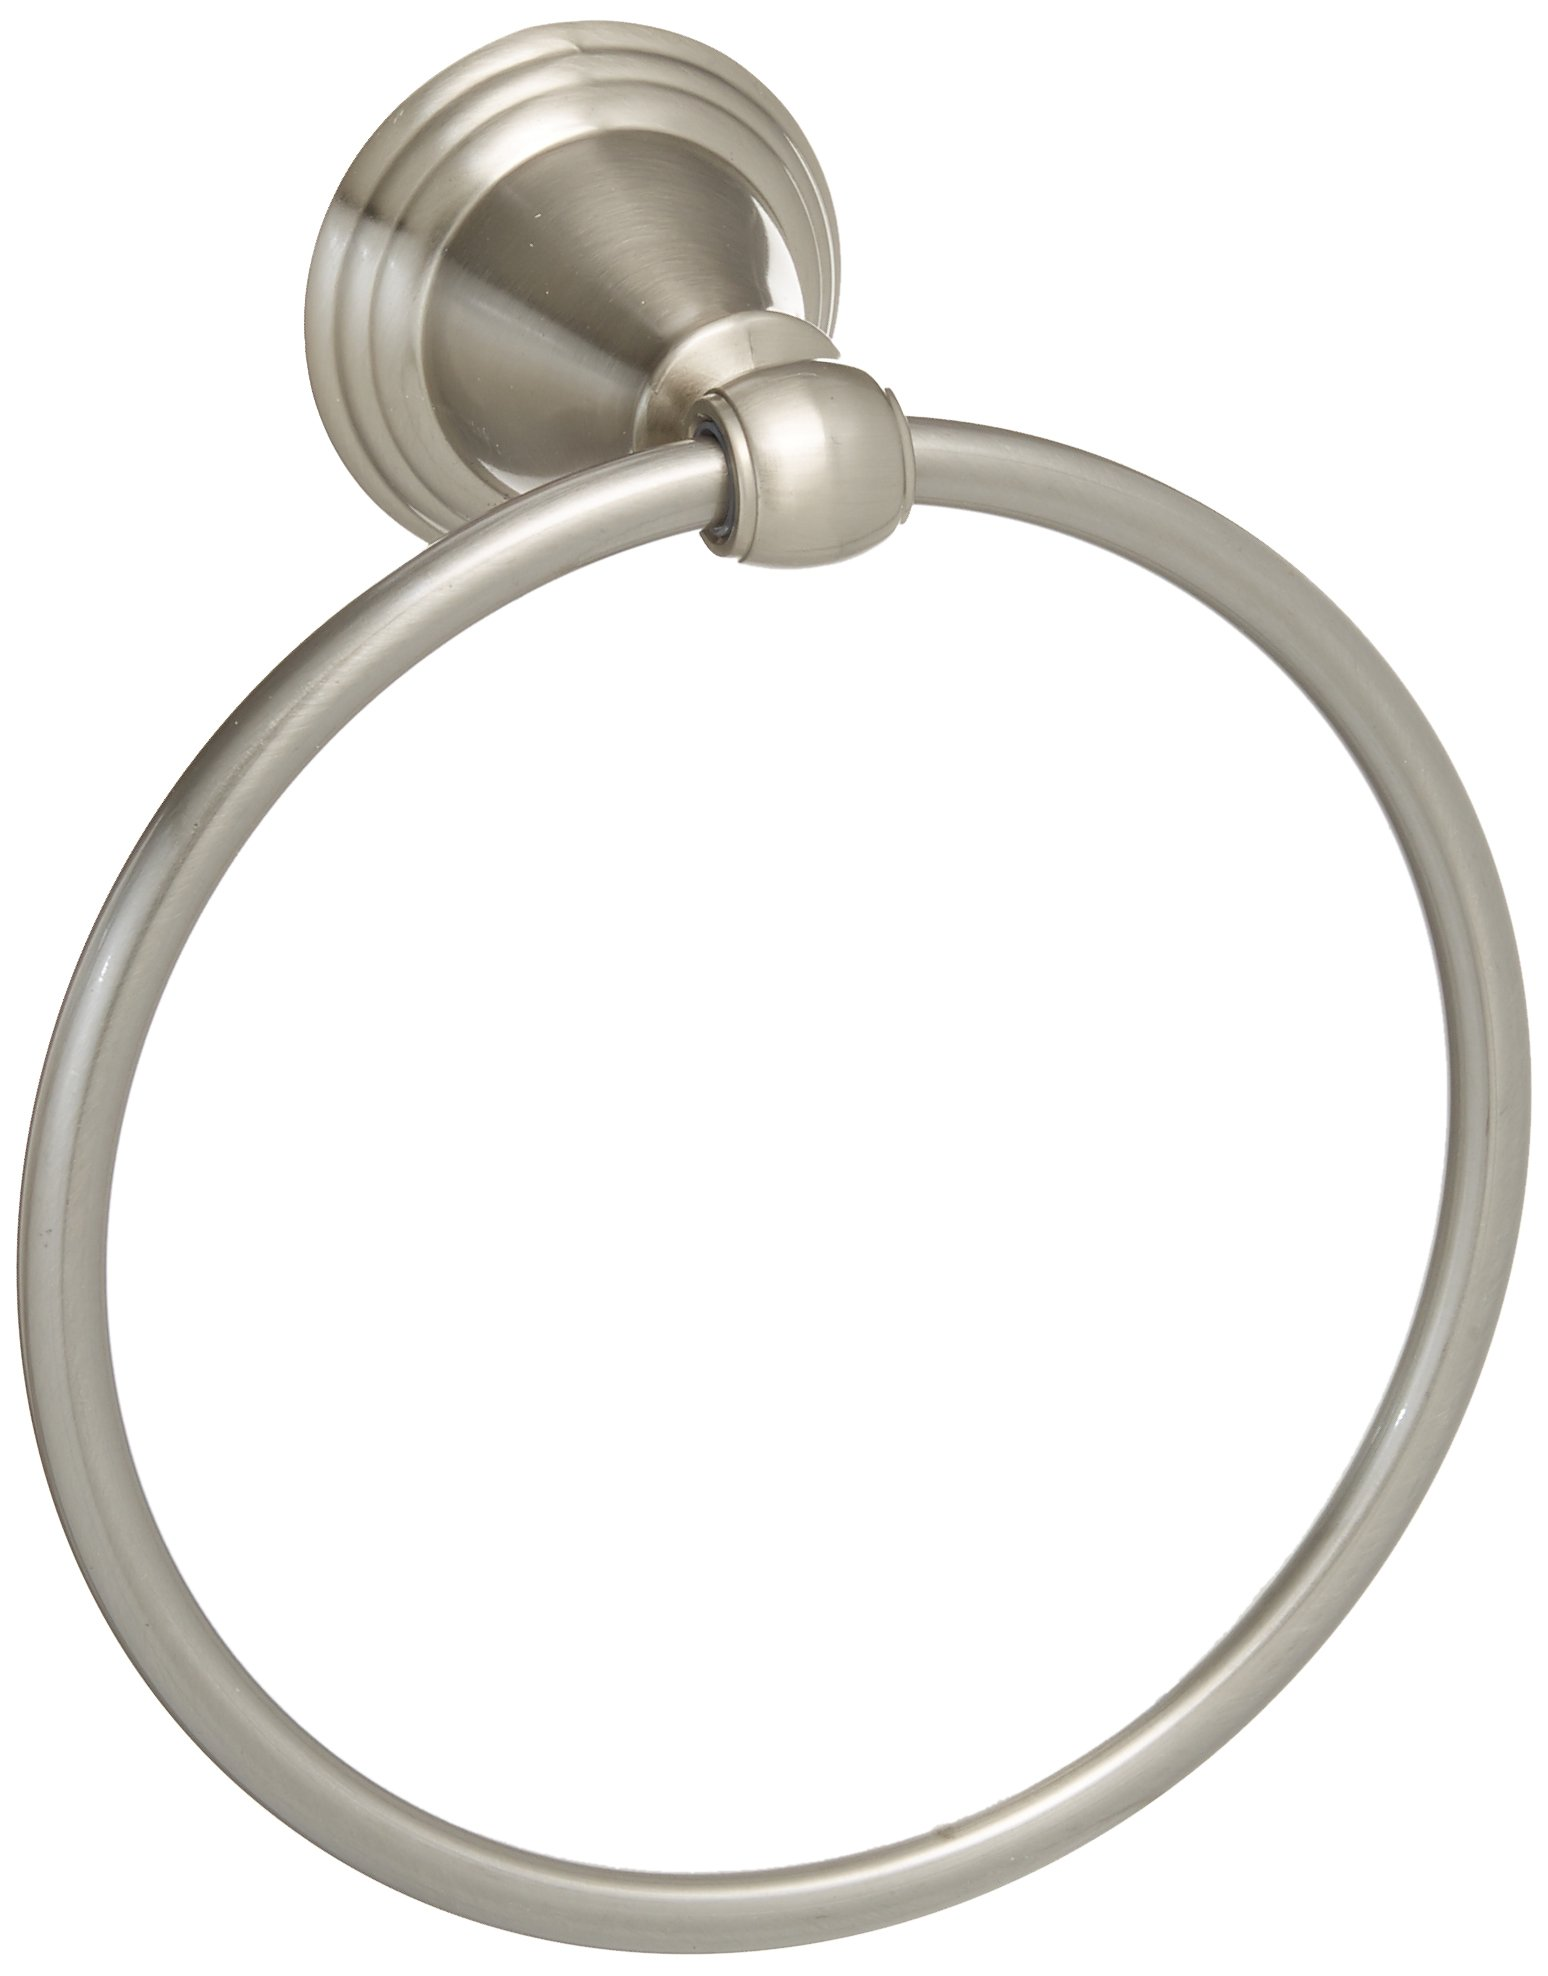 Delta Faucet Bathroom Accessories 79646-BN Windemere Towel Ring, SpotShield Brushed Nickel by DELTA FAUCET